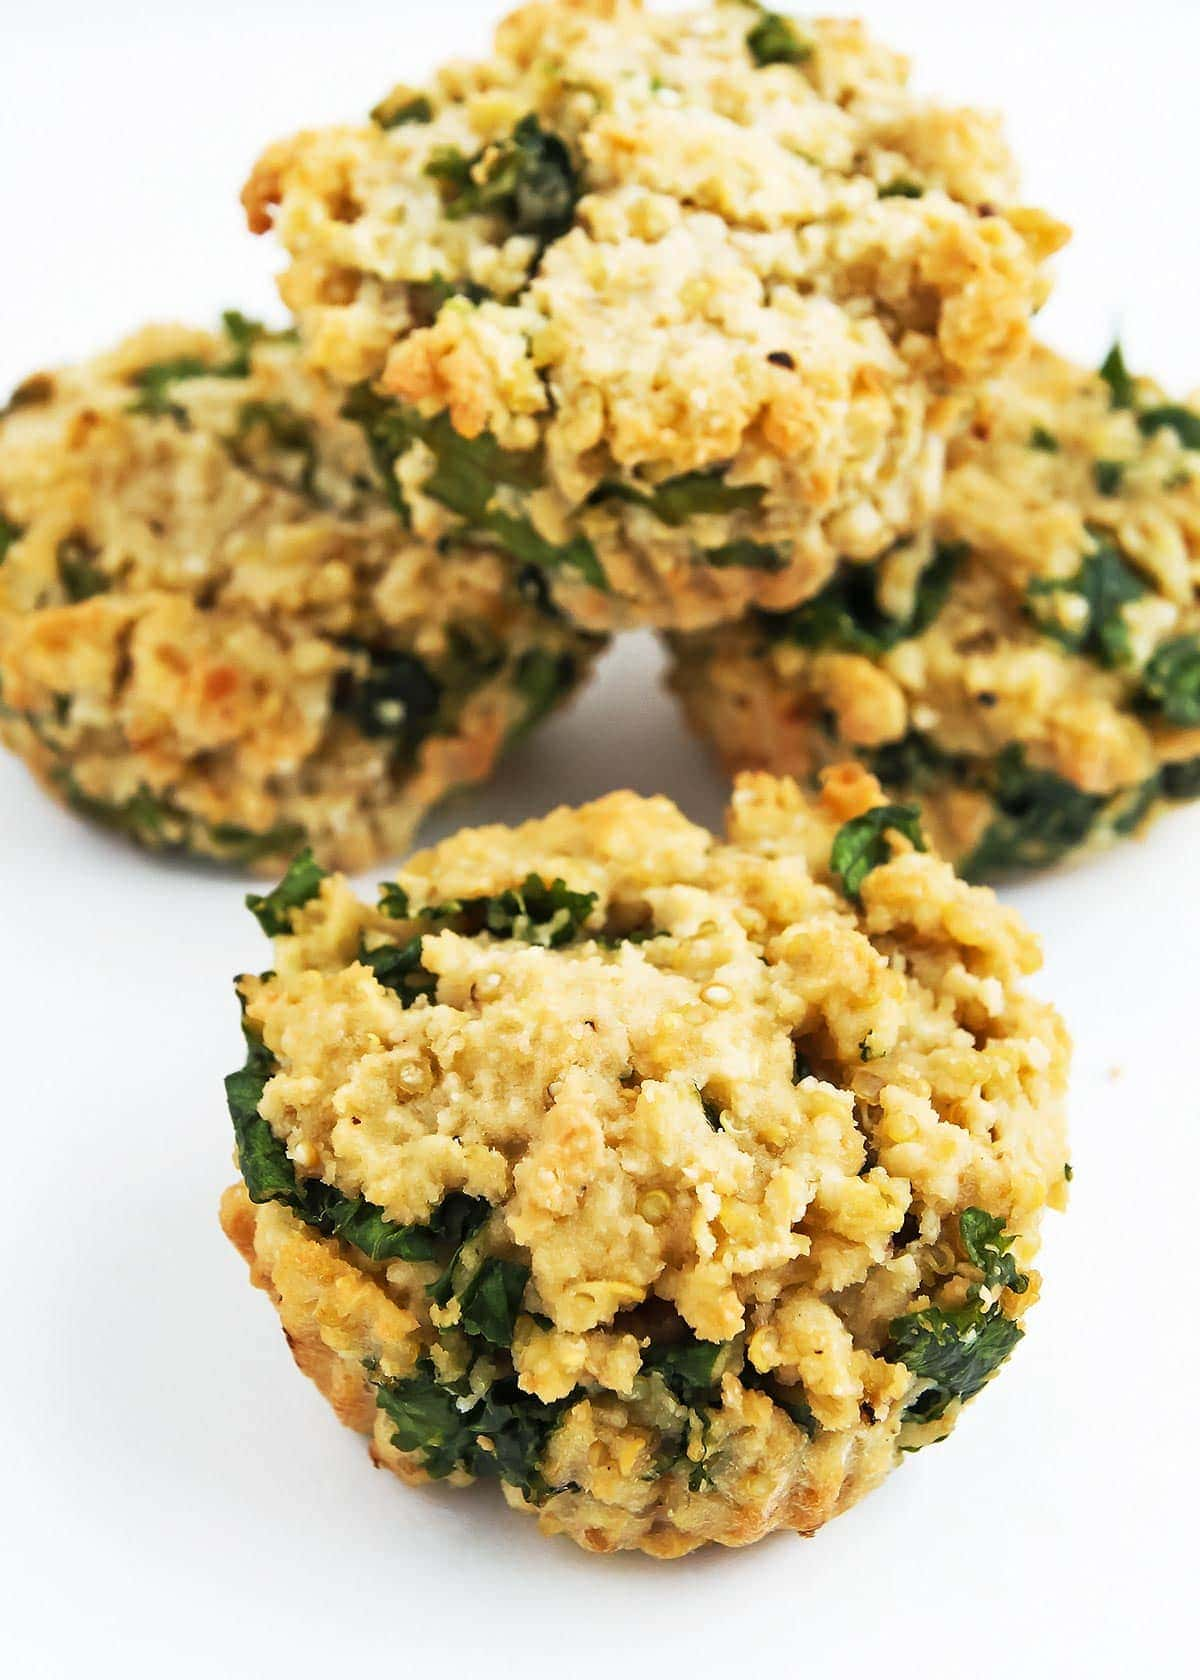 Stack of Quinoa Muffins with Kale